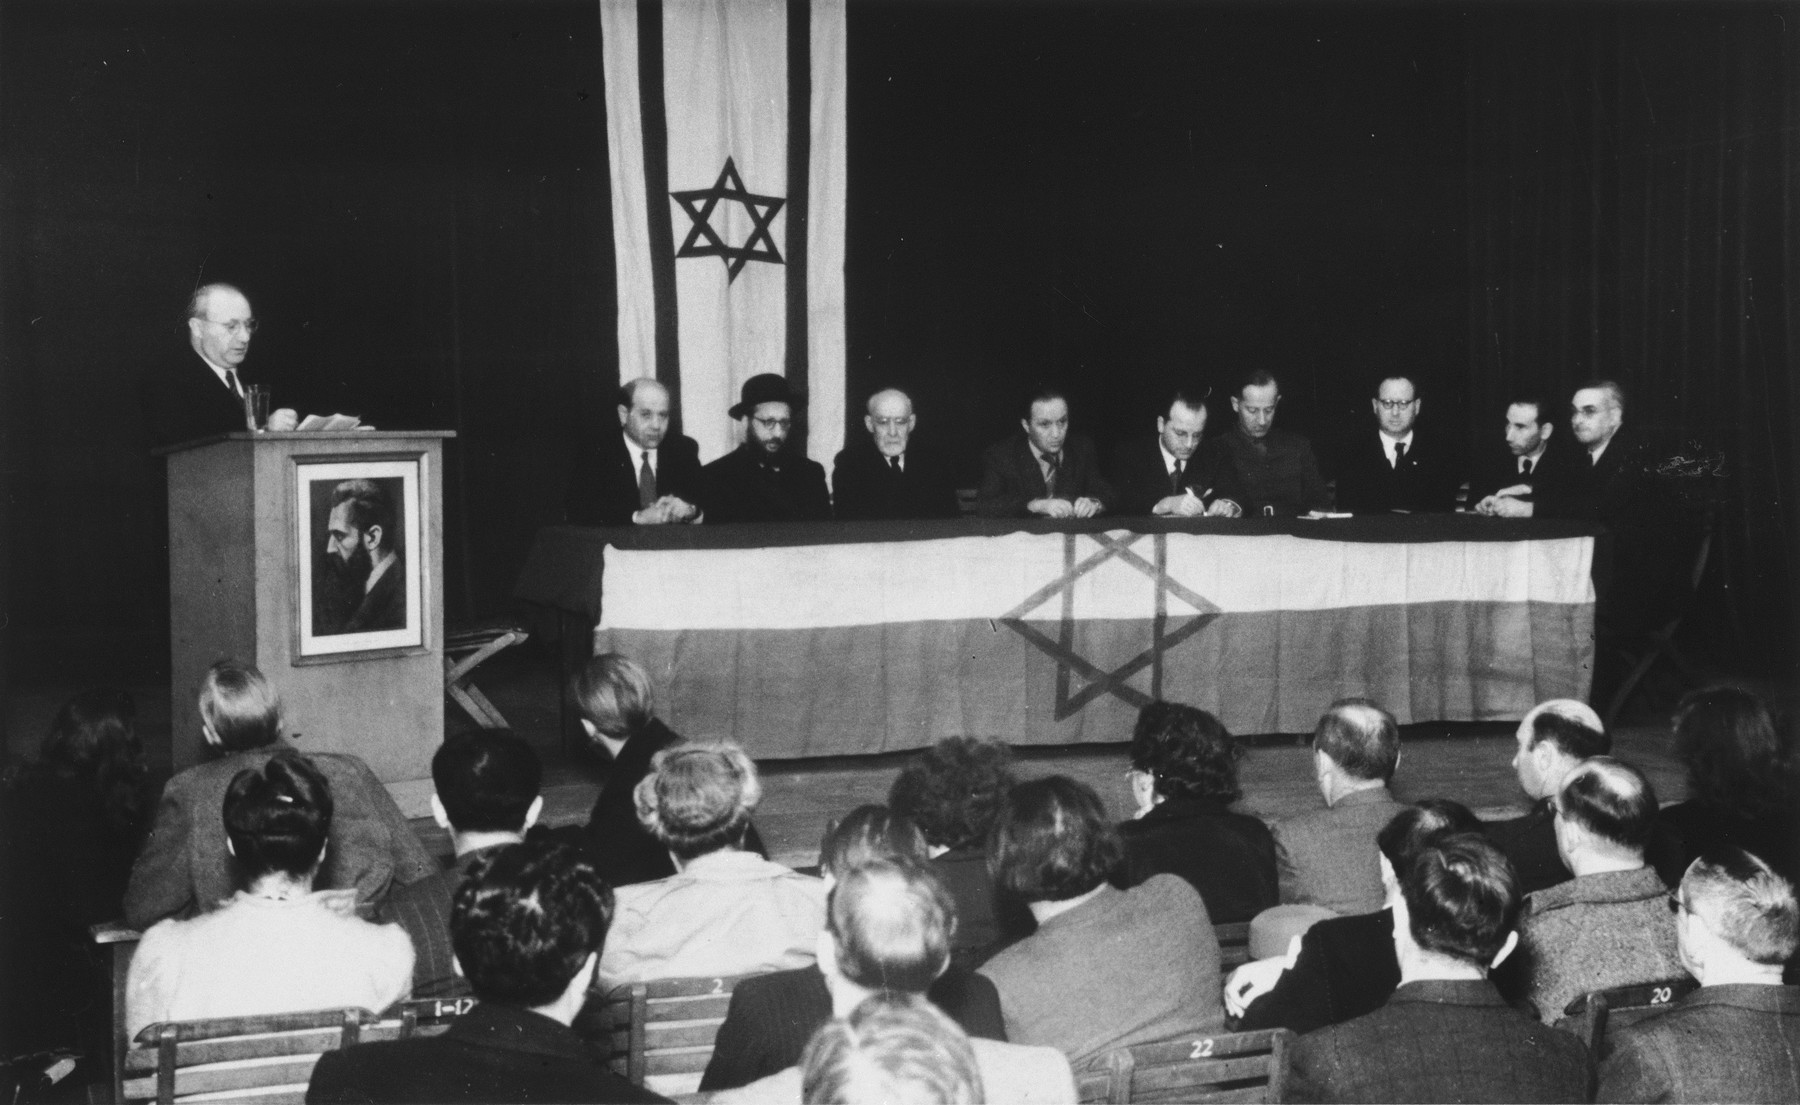 An unidentified Jewish leader delivers a speech at a Zionist meeting in Hannover.  Among those pictured is Rabbi Leo Baeck (seated third from the left).